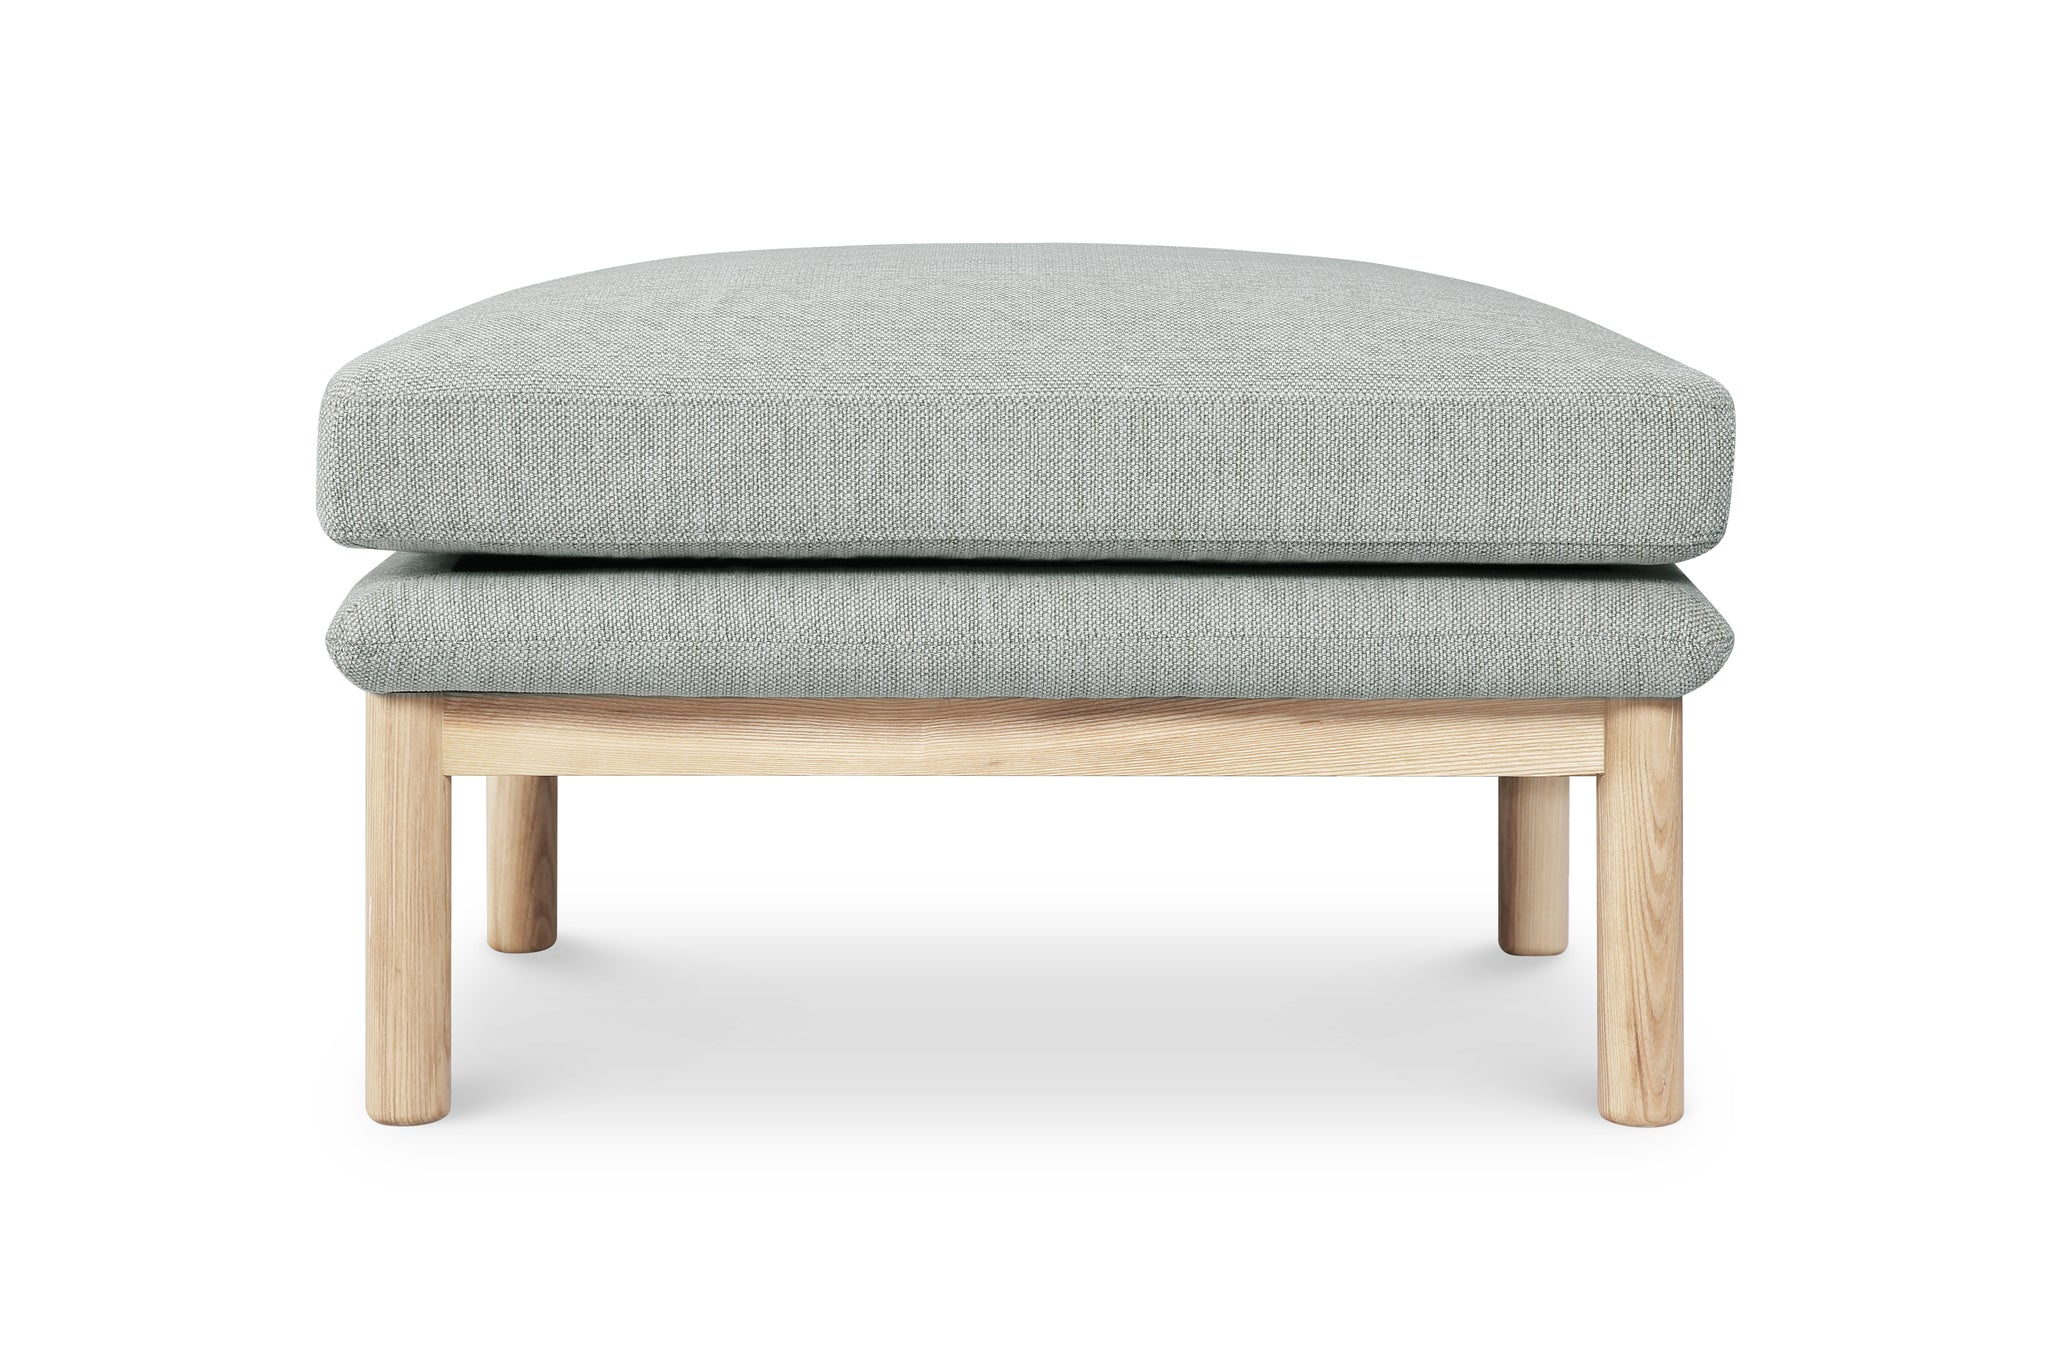 1141FWLG,Angle Arm Ottoman in Light Grey Weave with Ash Base